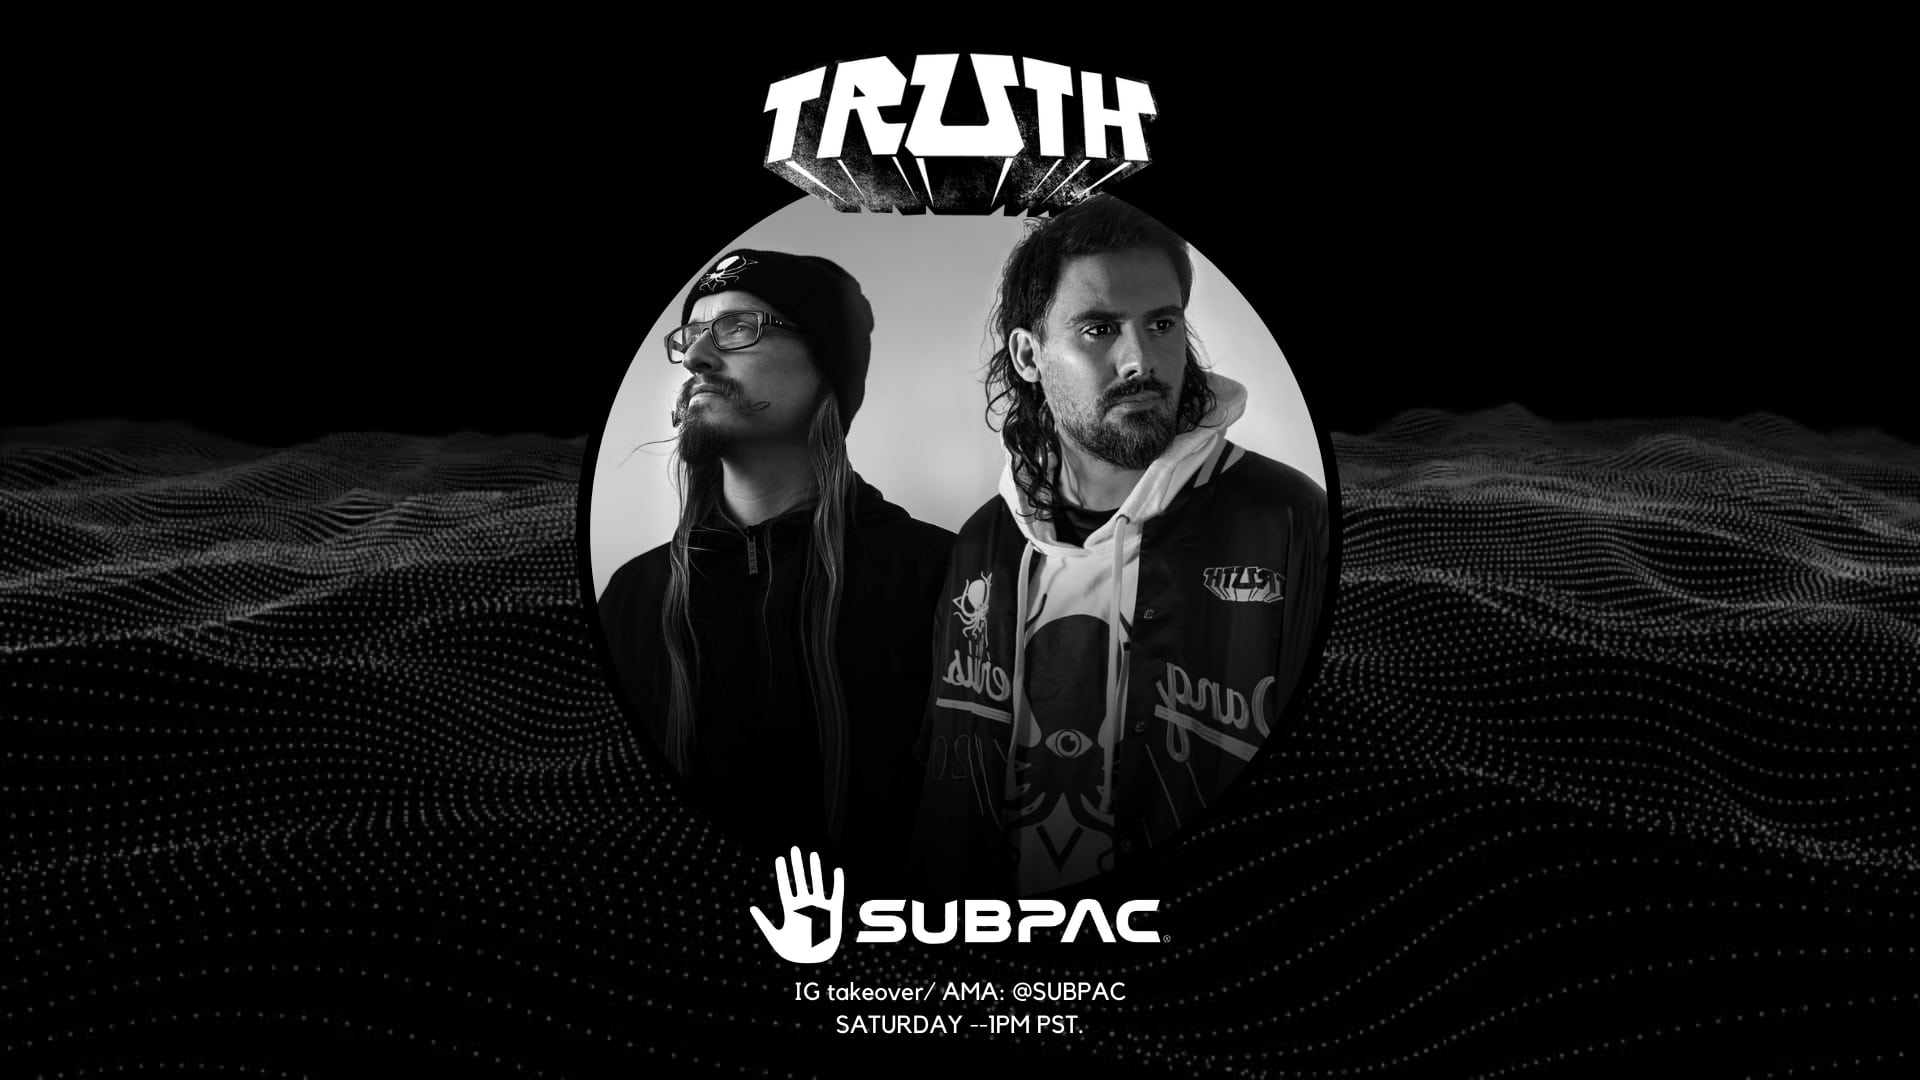 AMA with Truth x SUBPAC